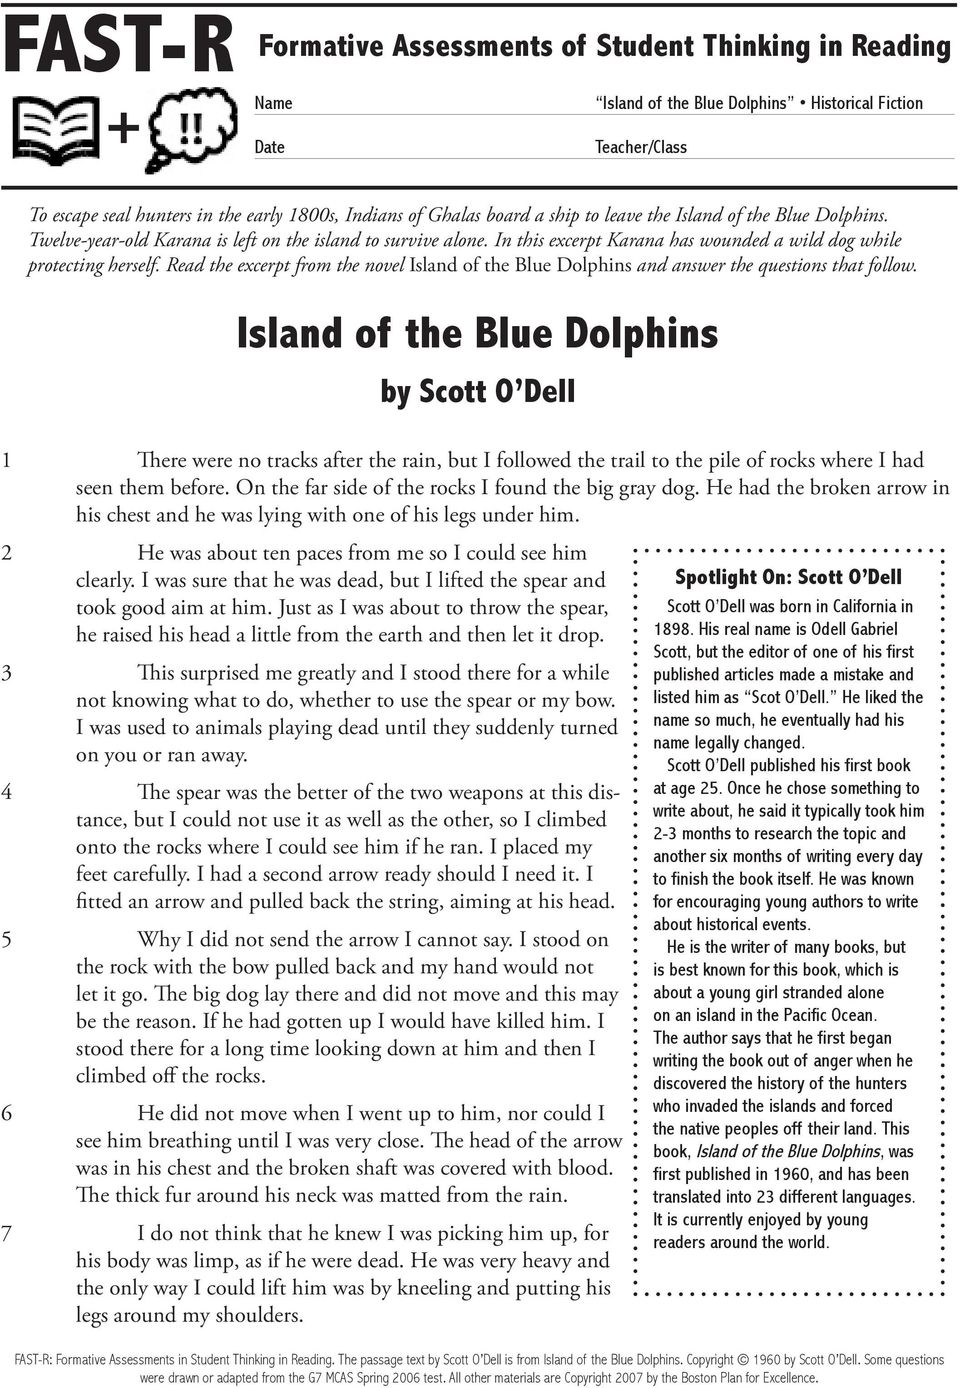 Read the excerpt from the novel Island of the Blue Dolphins and answer the questions that follow.